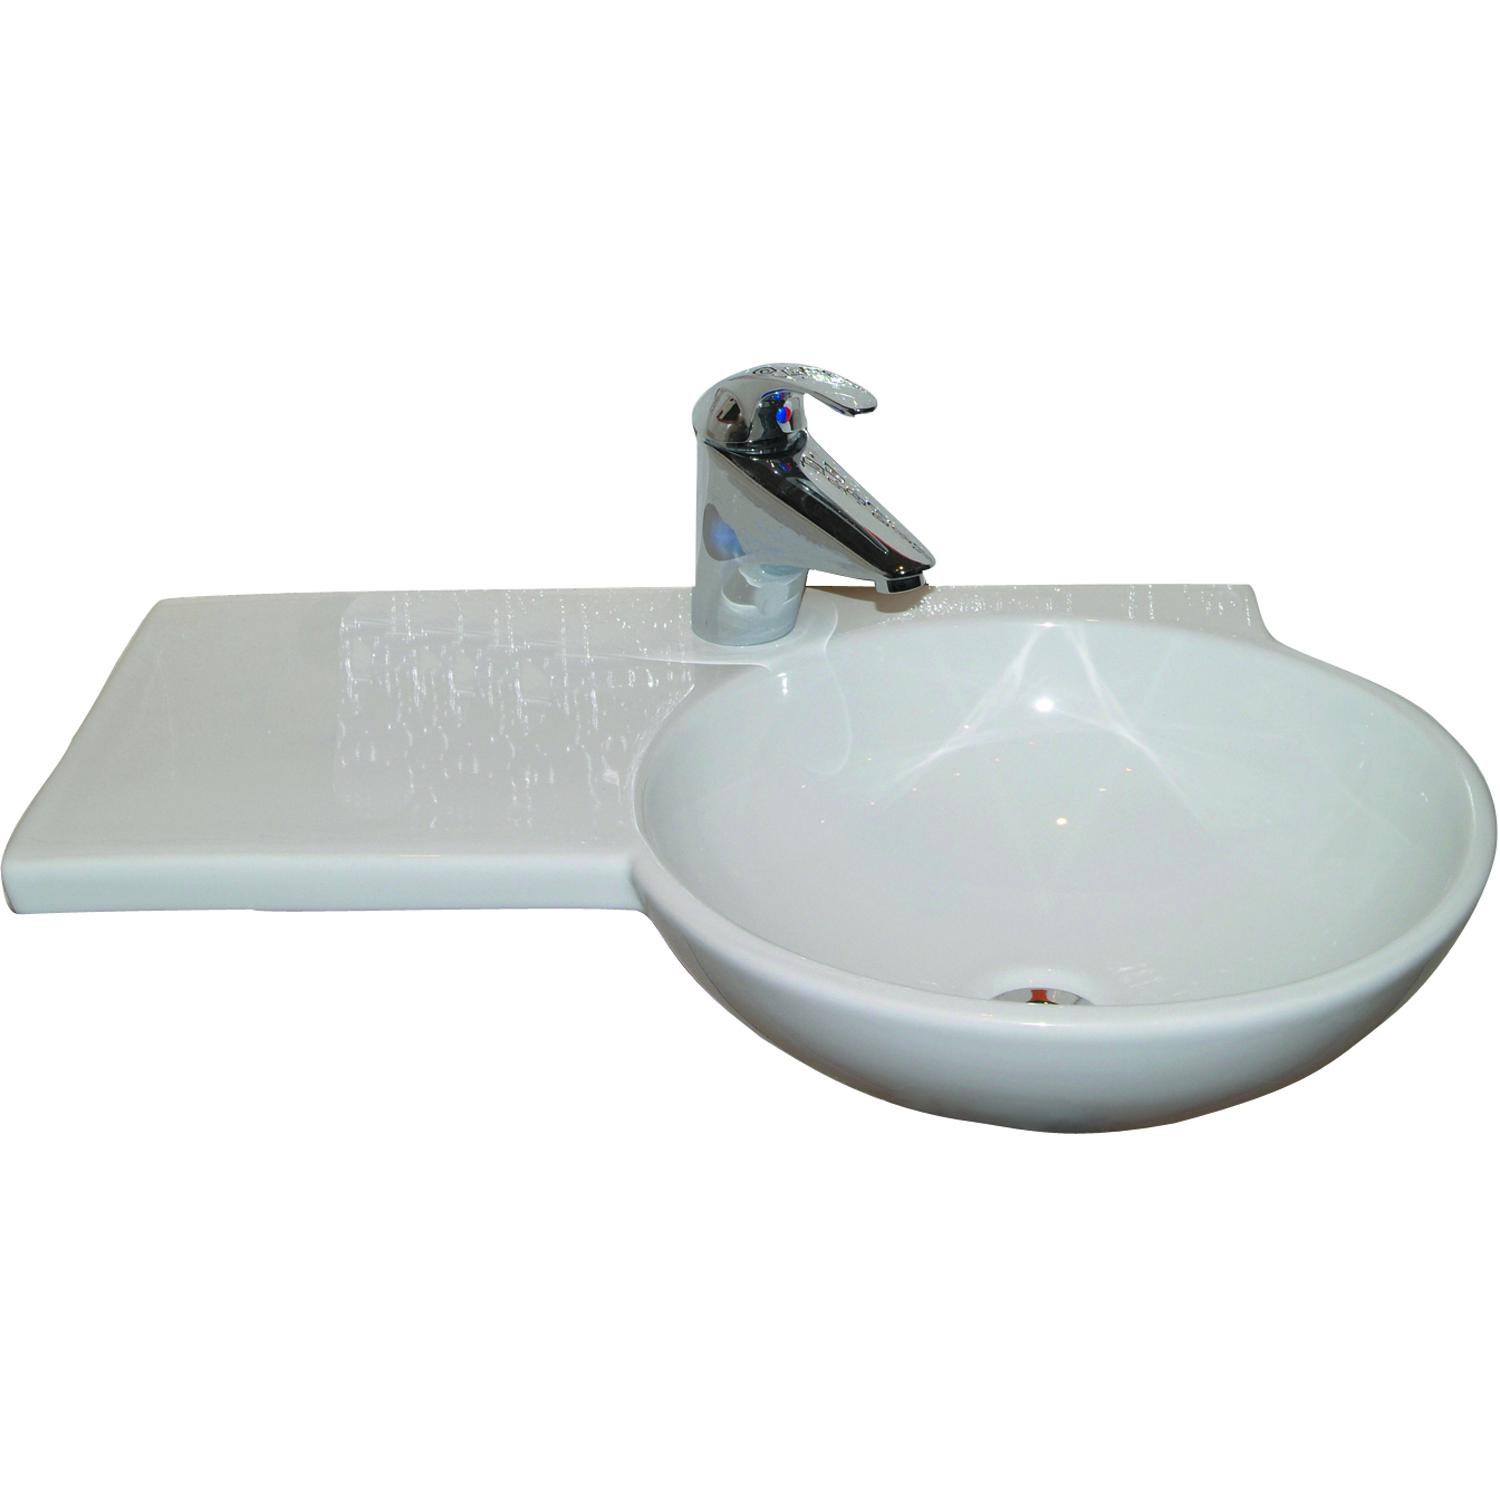 Elegant barclay sinks single bowl double bowl stainless kitchen sink barclay sinks for kitchen ideas